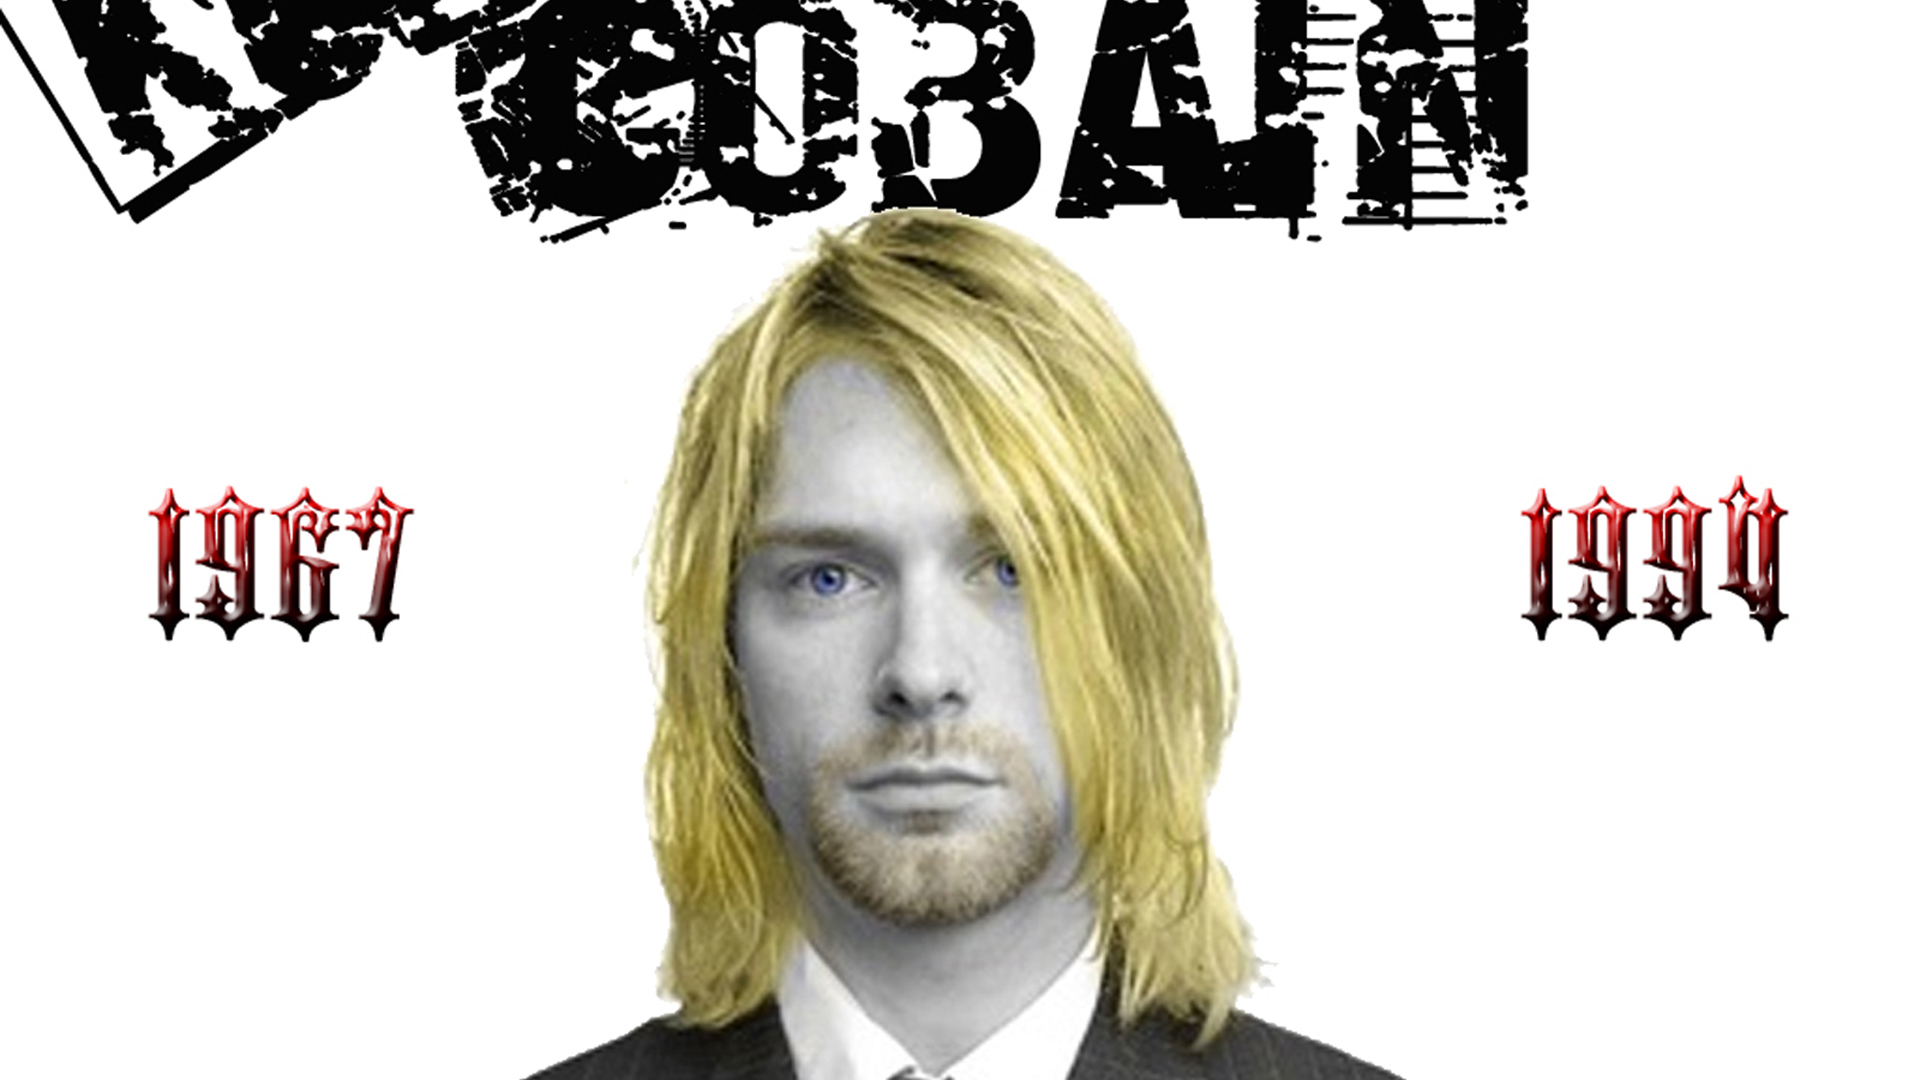 Kurt Cobain Desktop 1920x1080 Wallpapers 1920x1080 Wallpapers 1920x1080